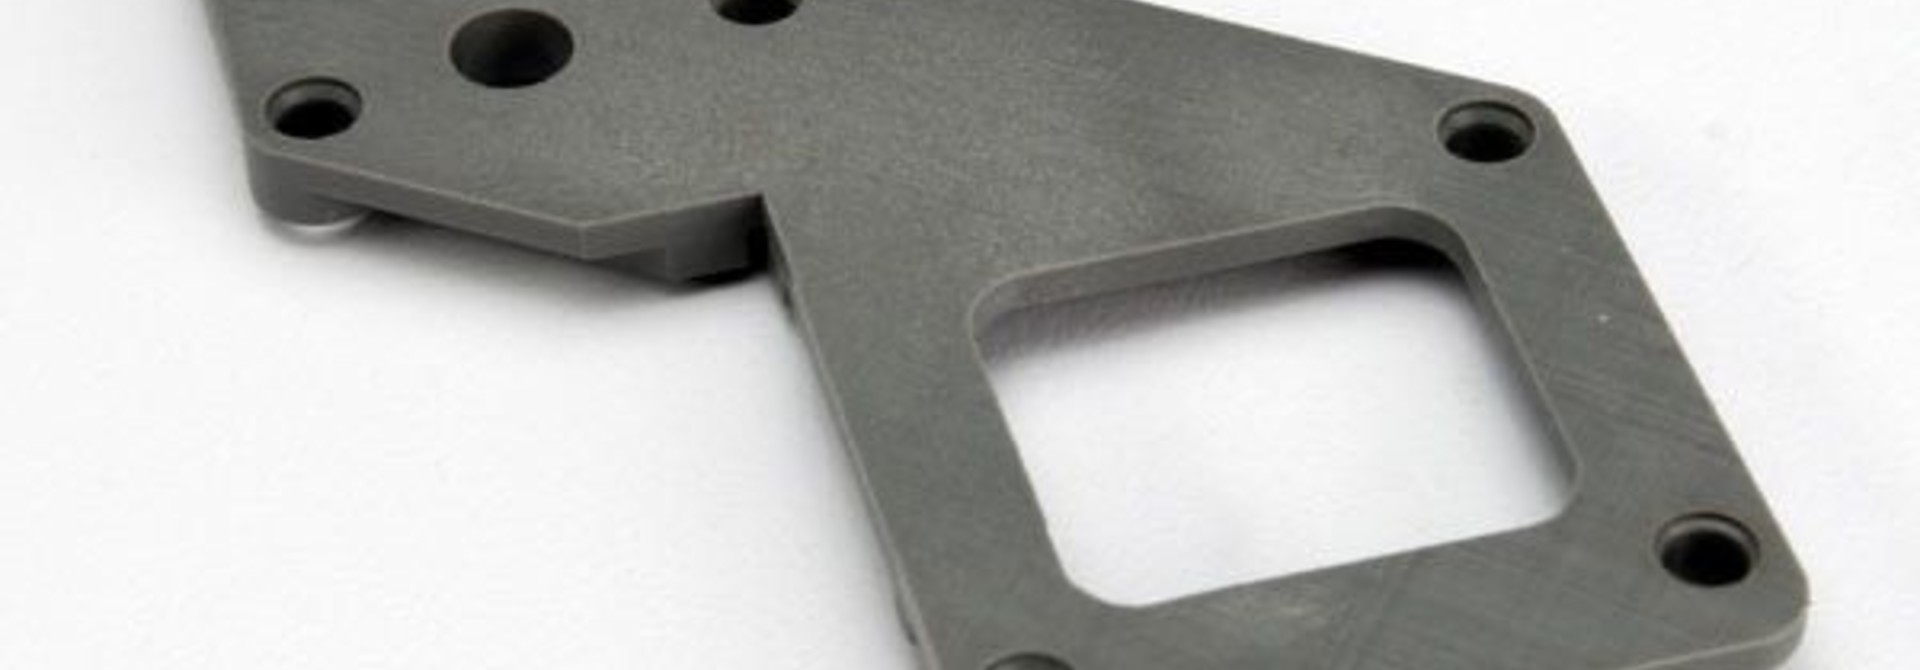 Brace, rear (grey), TRX4826A